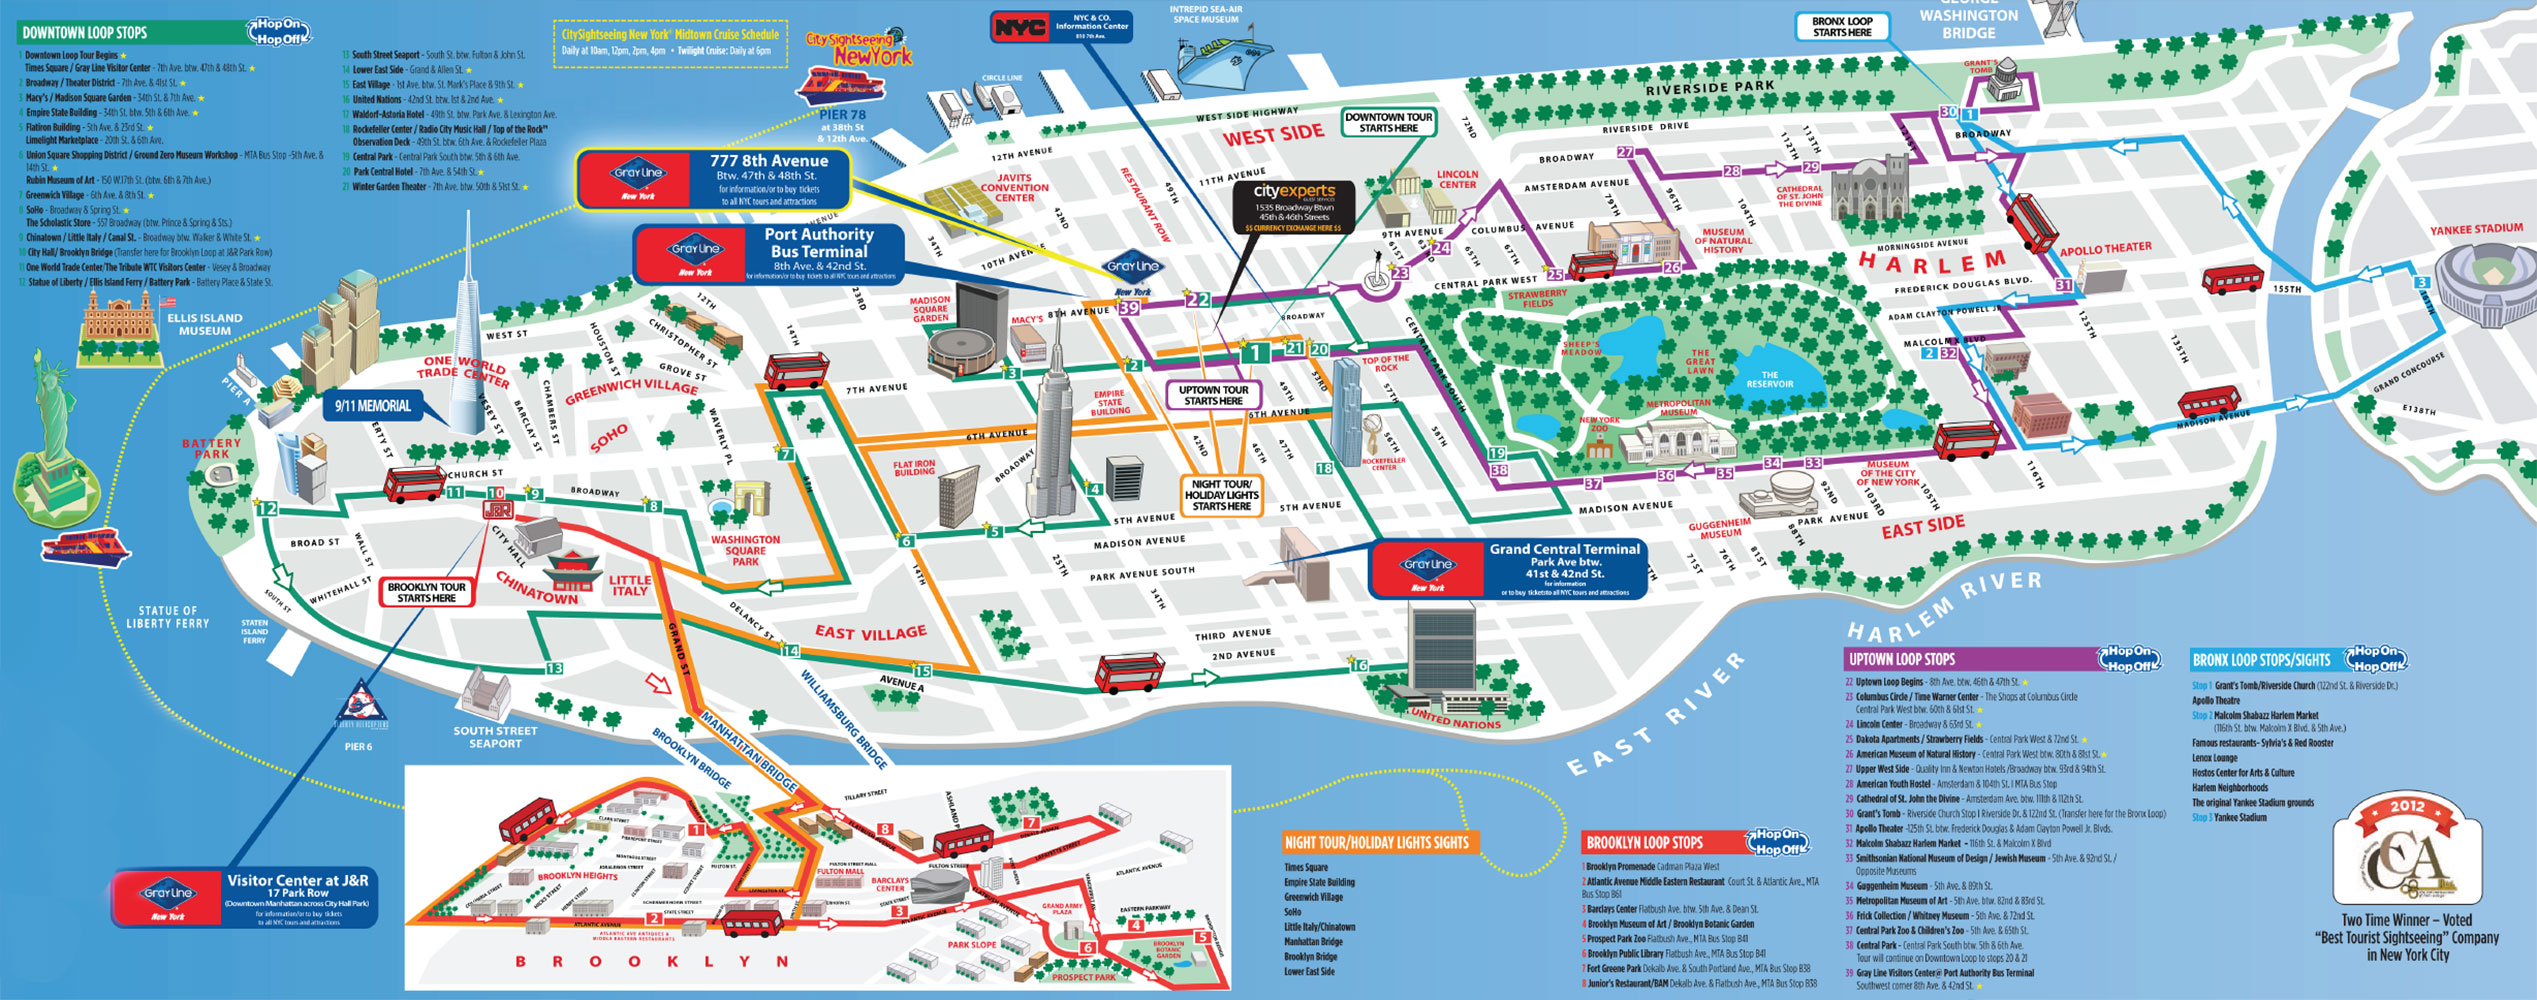 Maps Update 7421539 Map Of Tourist Attractions In New York City – Map New York Tourist Attractions